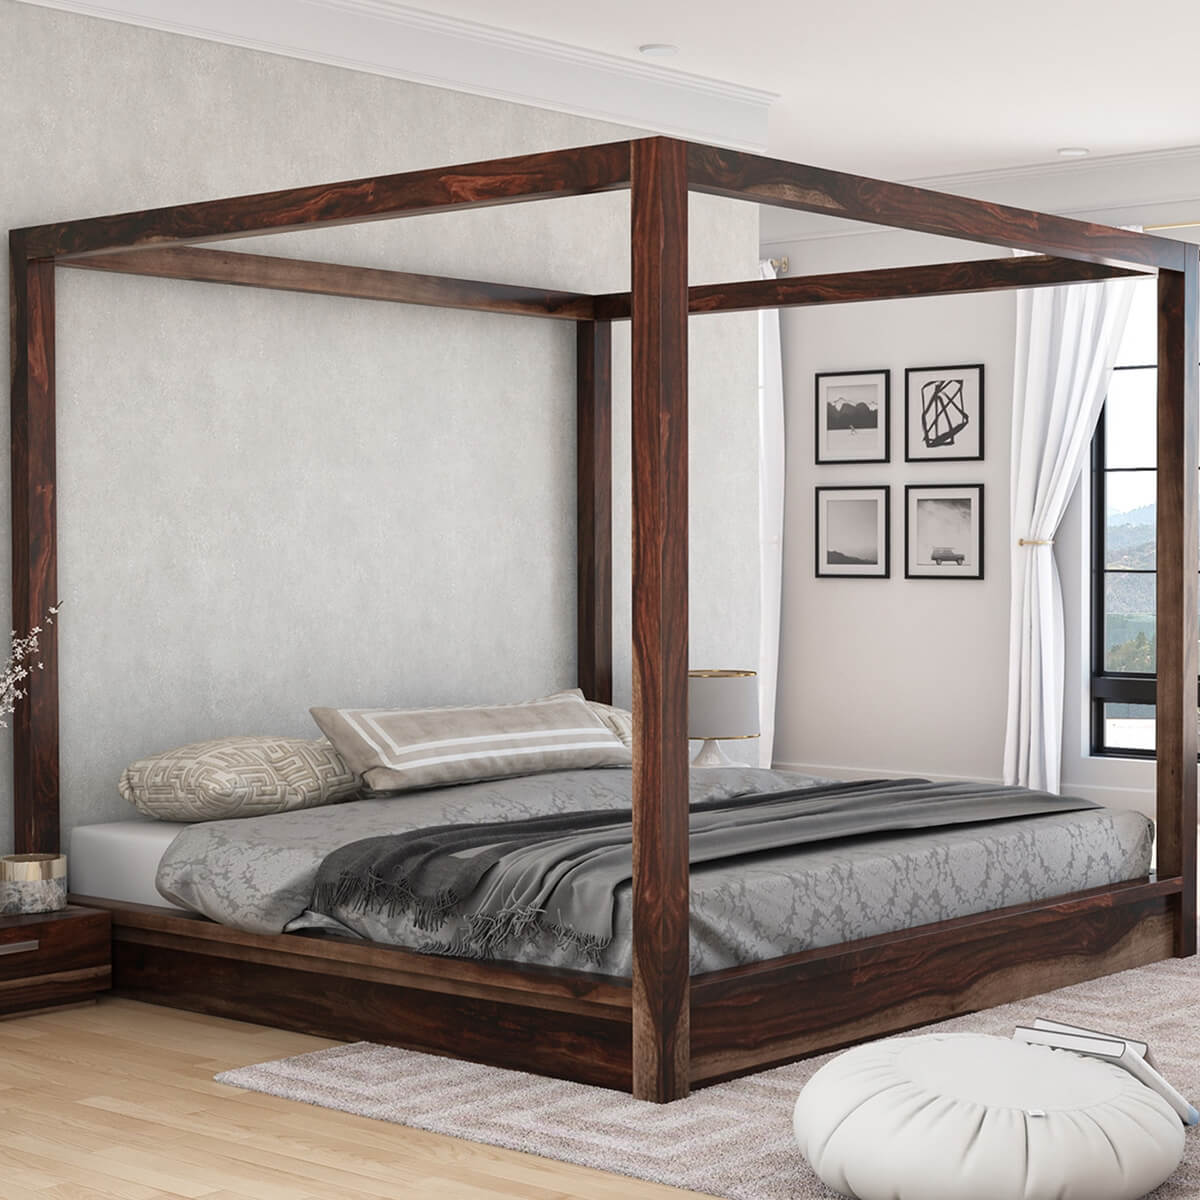 H&shire Rustic Solid Wood Canopy Bed & Rustic Solid Wood Canopy Bed